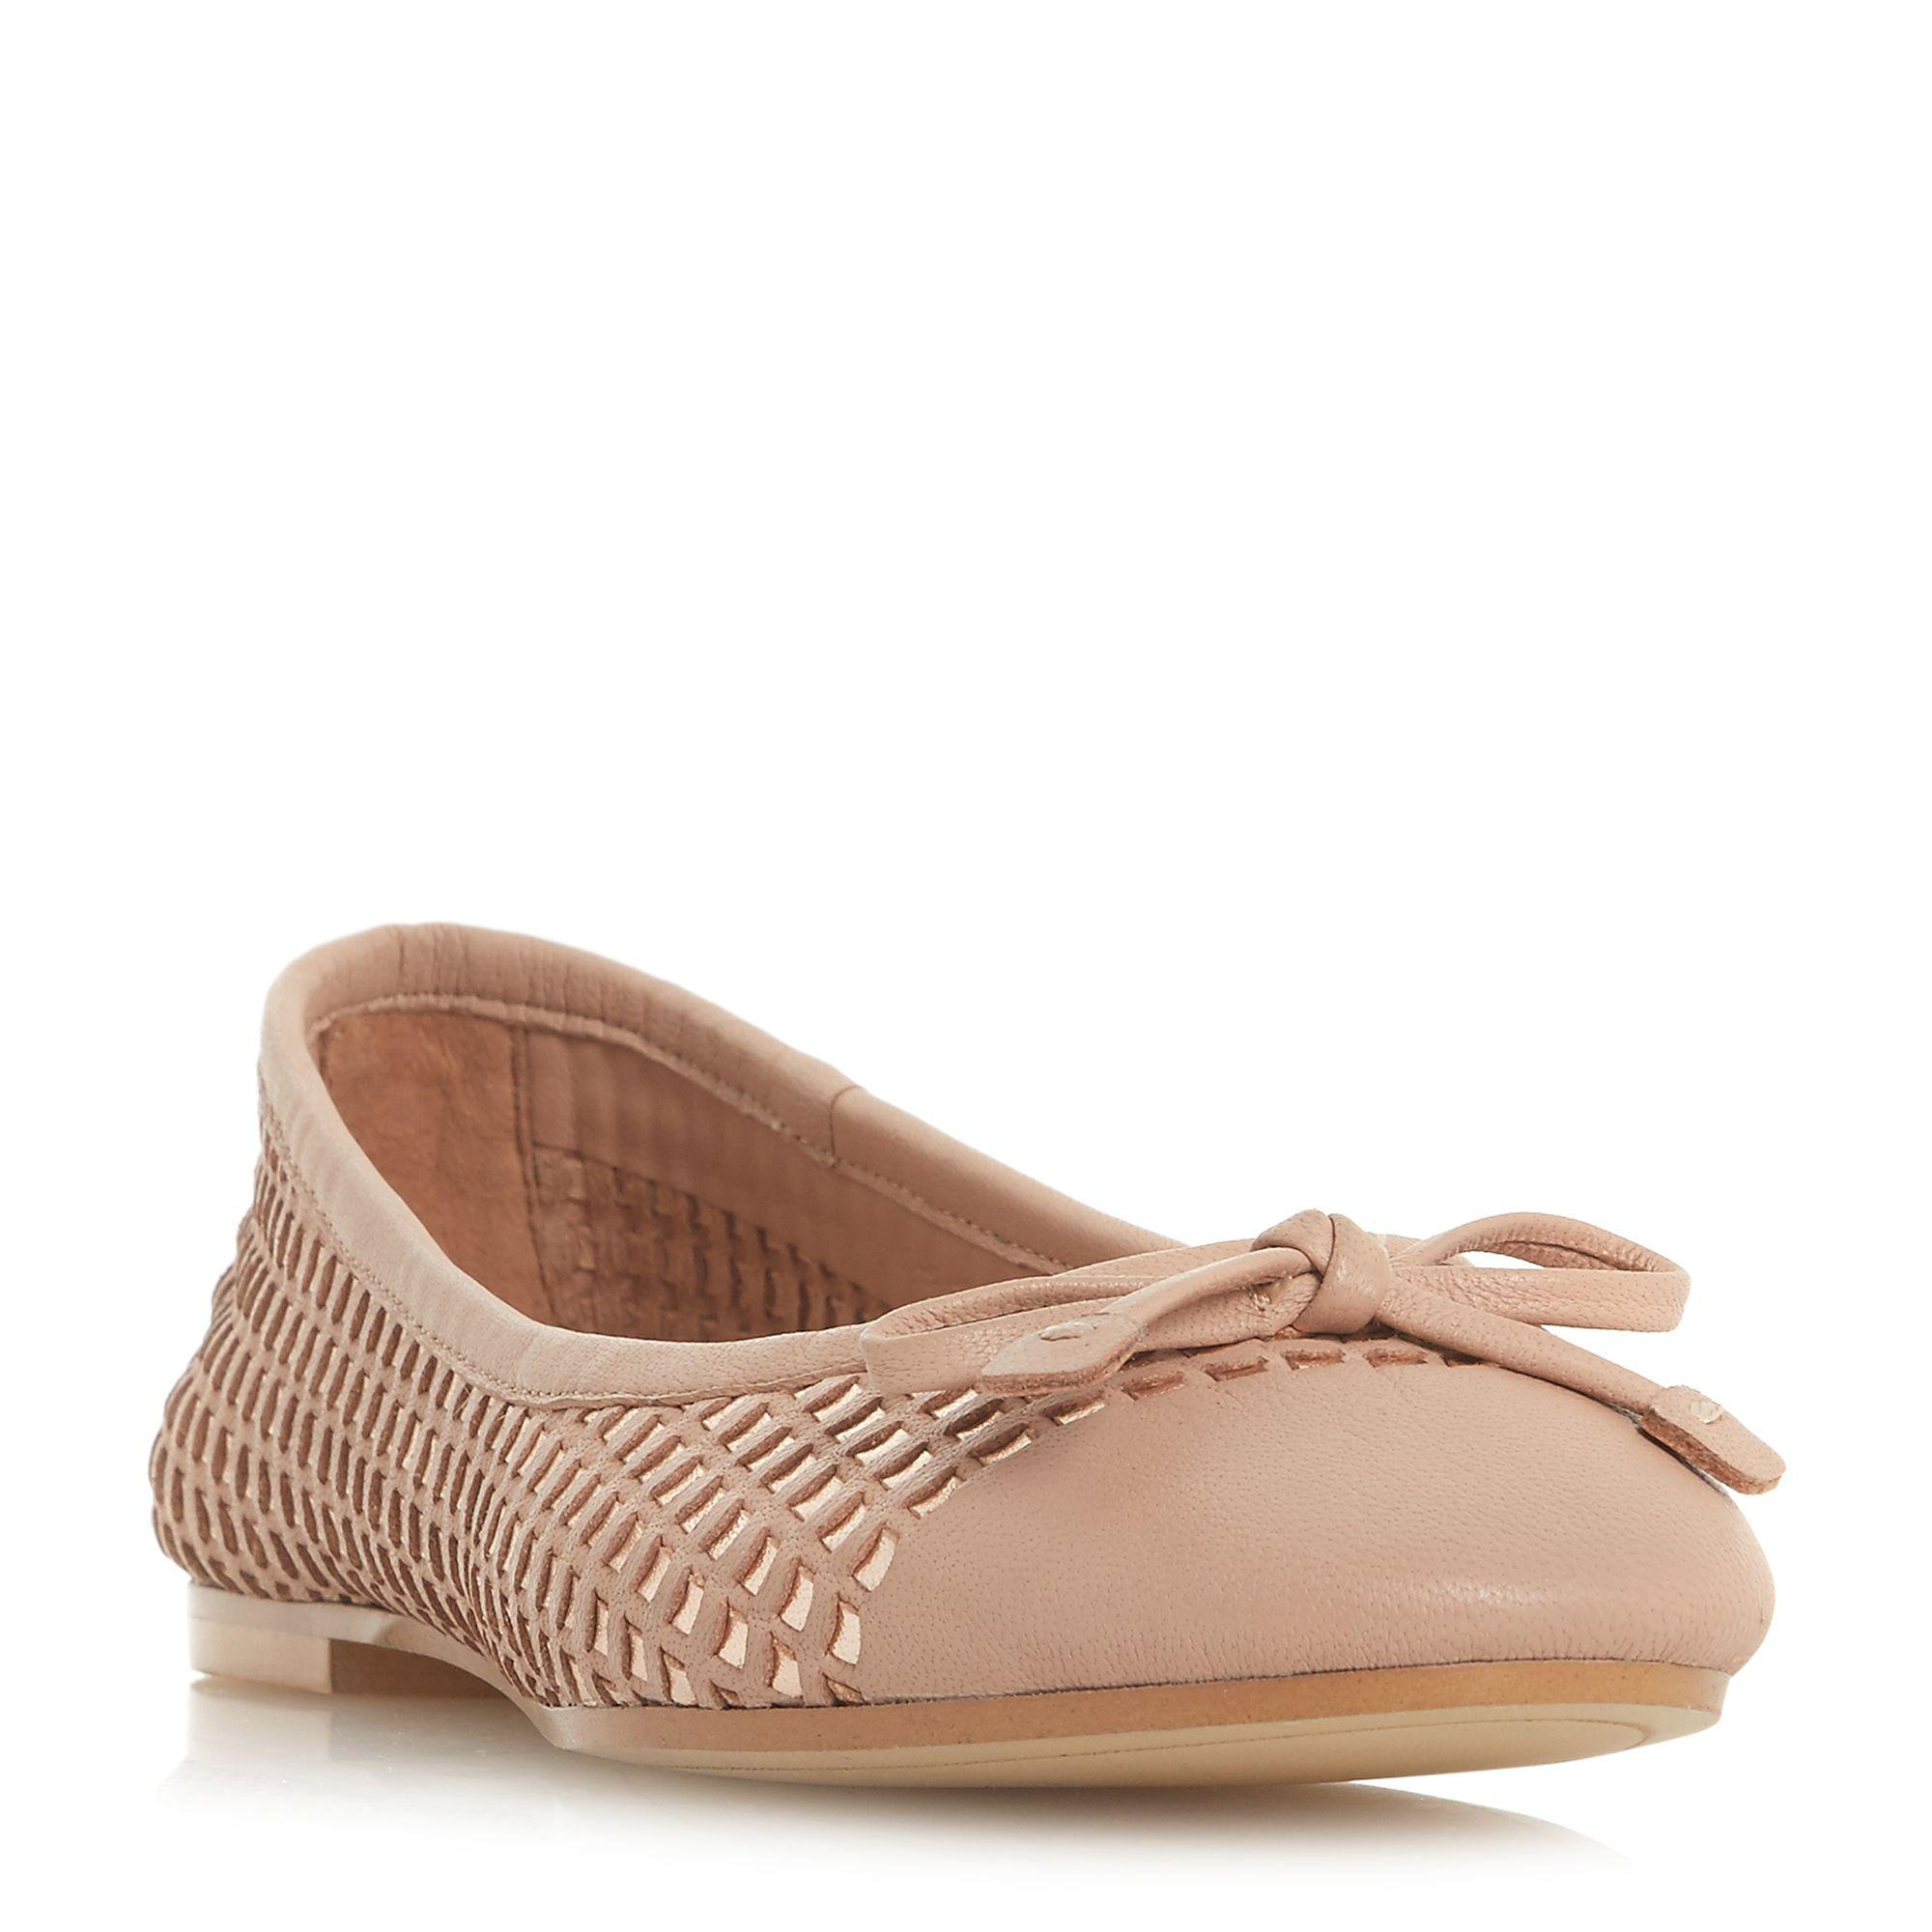 Tan leather 'Hennah' ballet pumps outlet sast TUP447cni